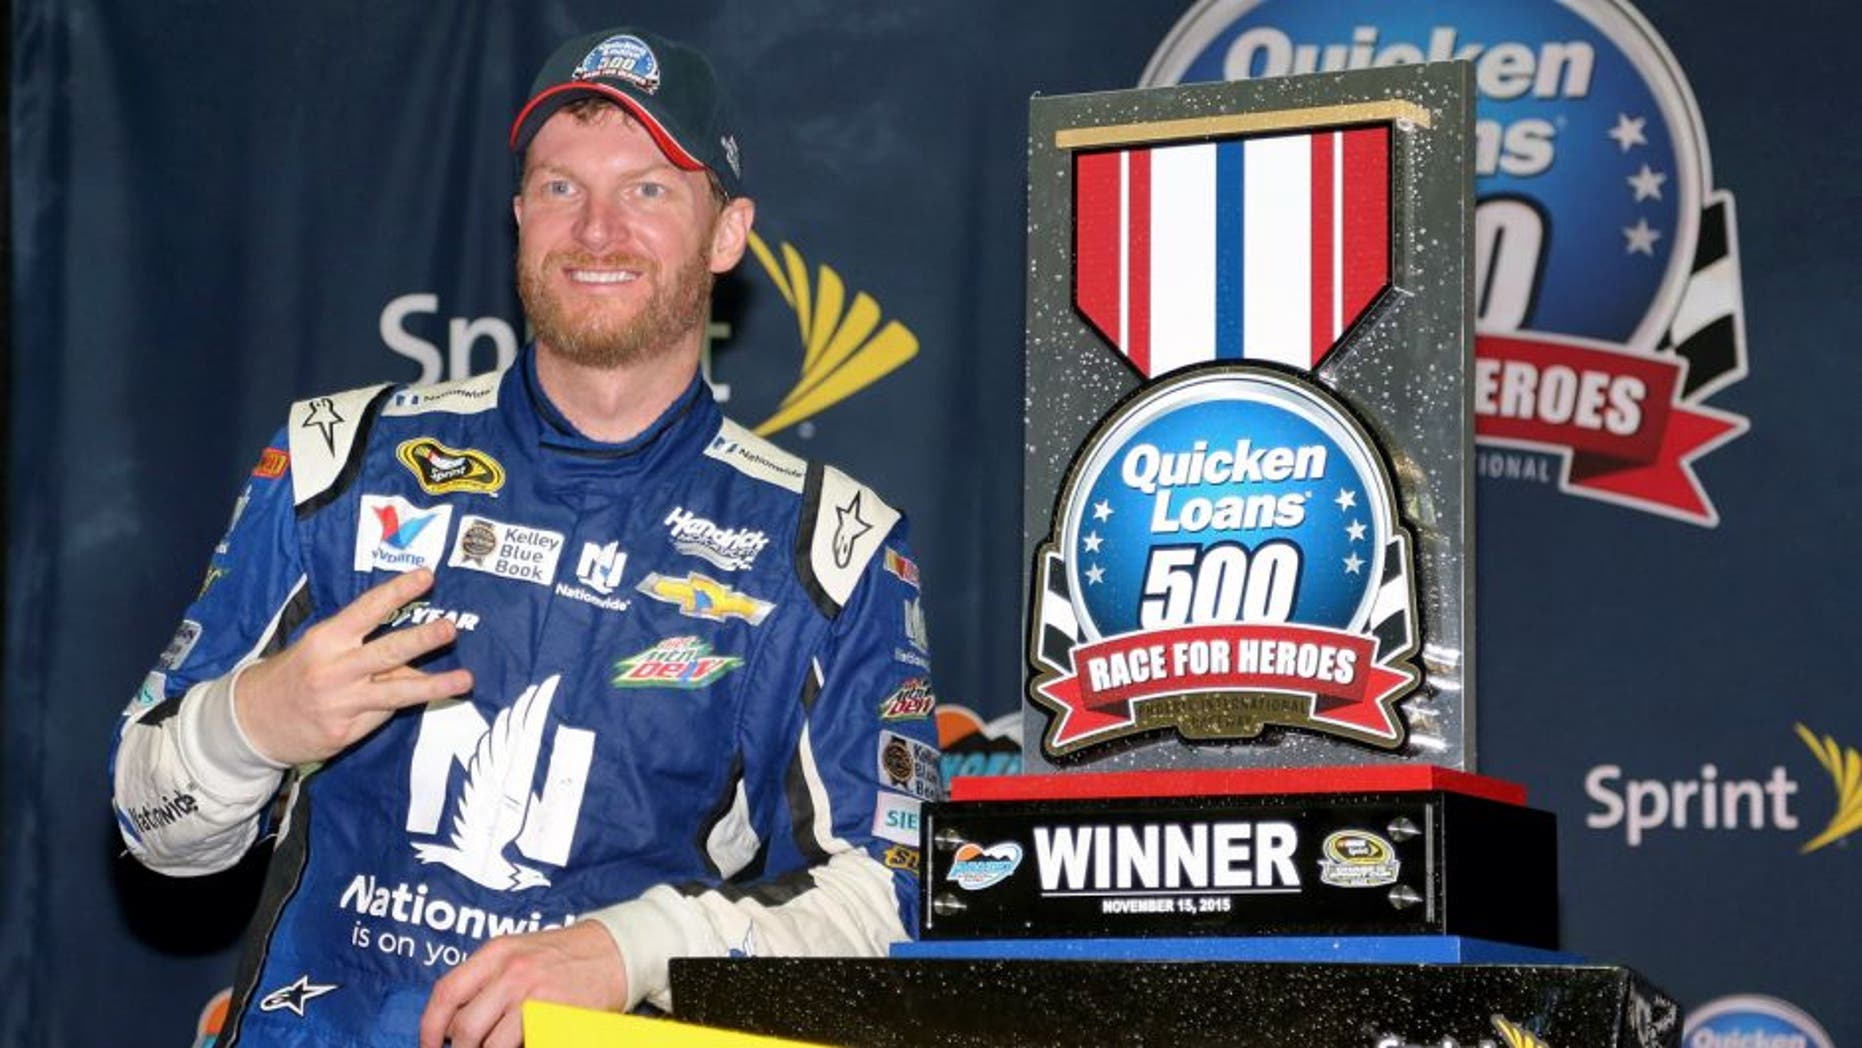 AVONDALE, AZ - NOVEMBER 15: Dale Earnhardt Jr., driver of the #88 Nationwide Chevrolet, celebrates in victory lane after winning the rain-shortened NASCAR Sprint Cup Series Quicken Loans Race for Heroes 500 at Phoenix International Raceway on November 15, 2015 in Avondale, Arizona. (Photo by Matt Sullivan/NASCAR via Getty Images)